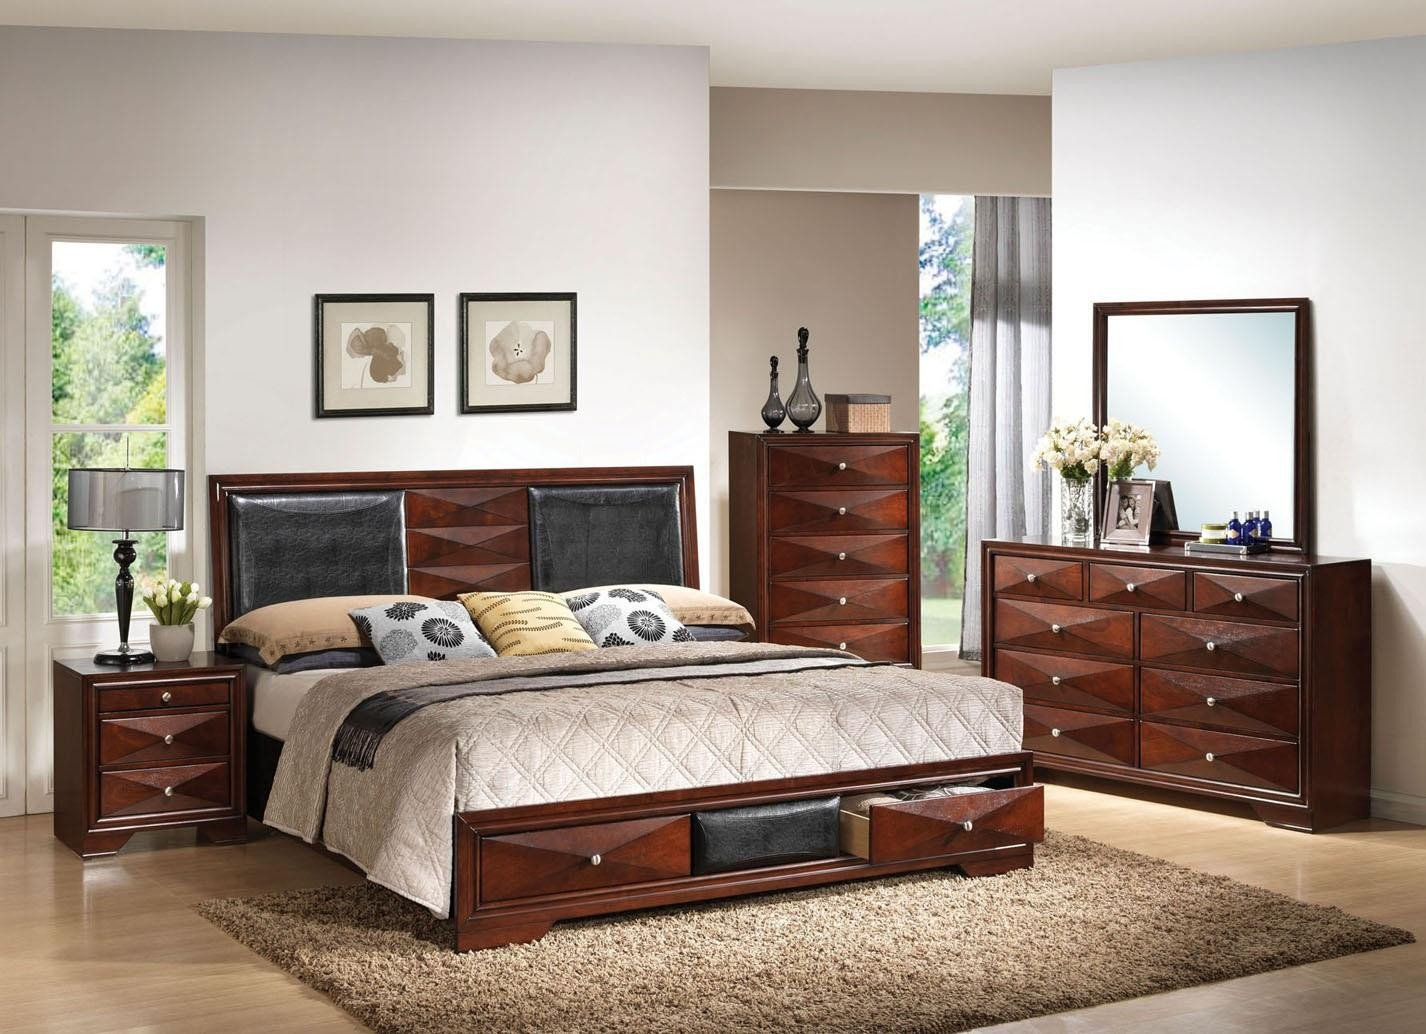 Acme Furniture Bedroom Set Inspirational Acme Furniture Windsor 5 Piece Bedroom Set